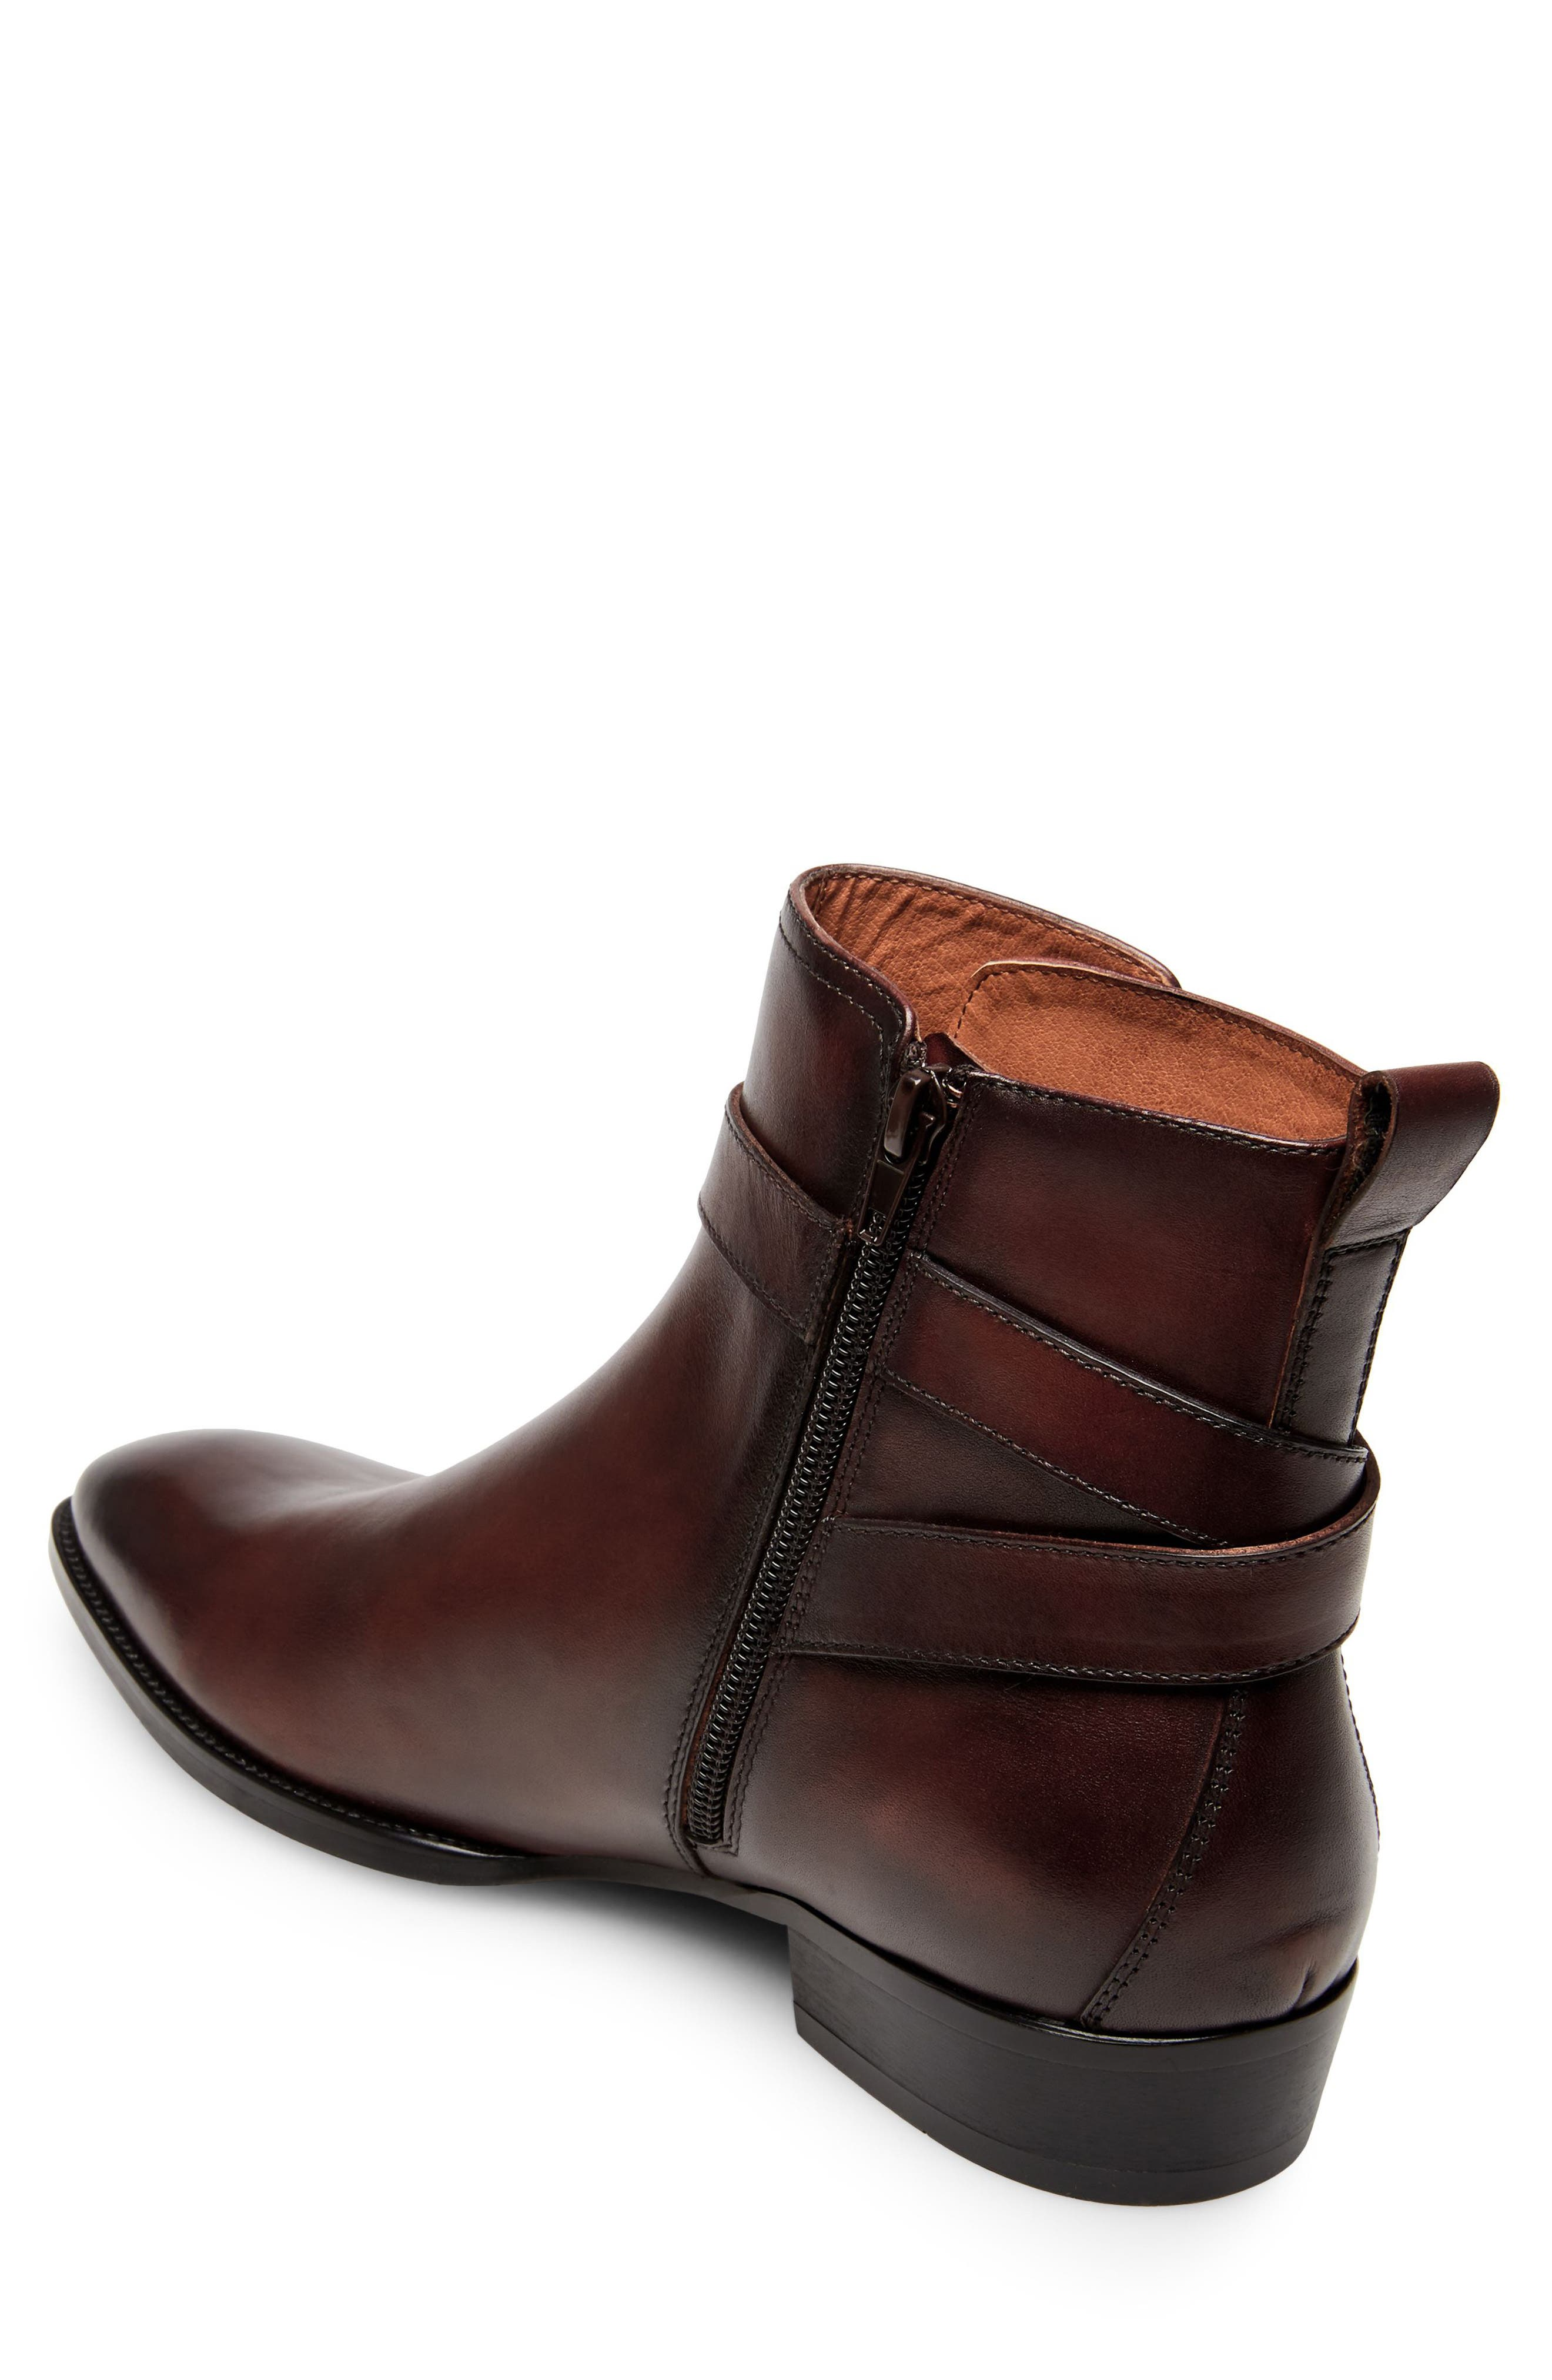 Sacha Buckle Strap Boot,                             Alternate thumbnail 2, color,                             Brown Leather